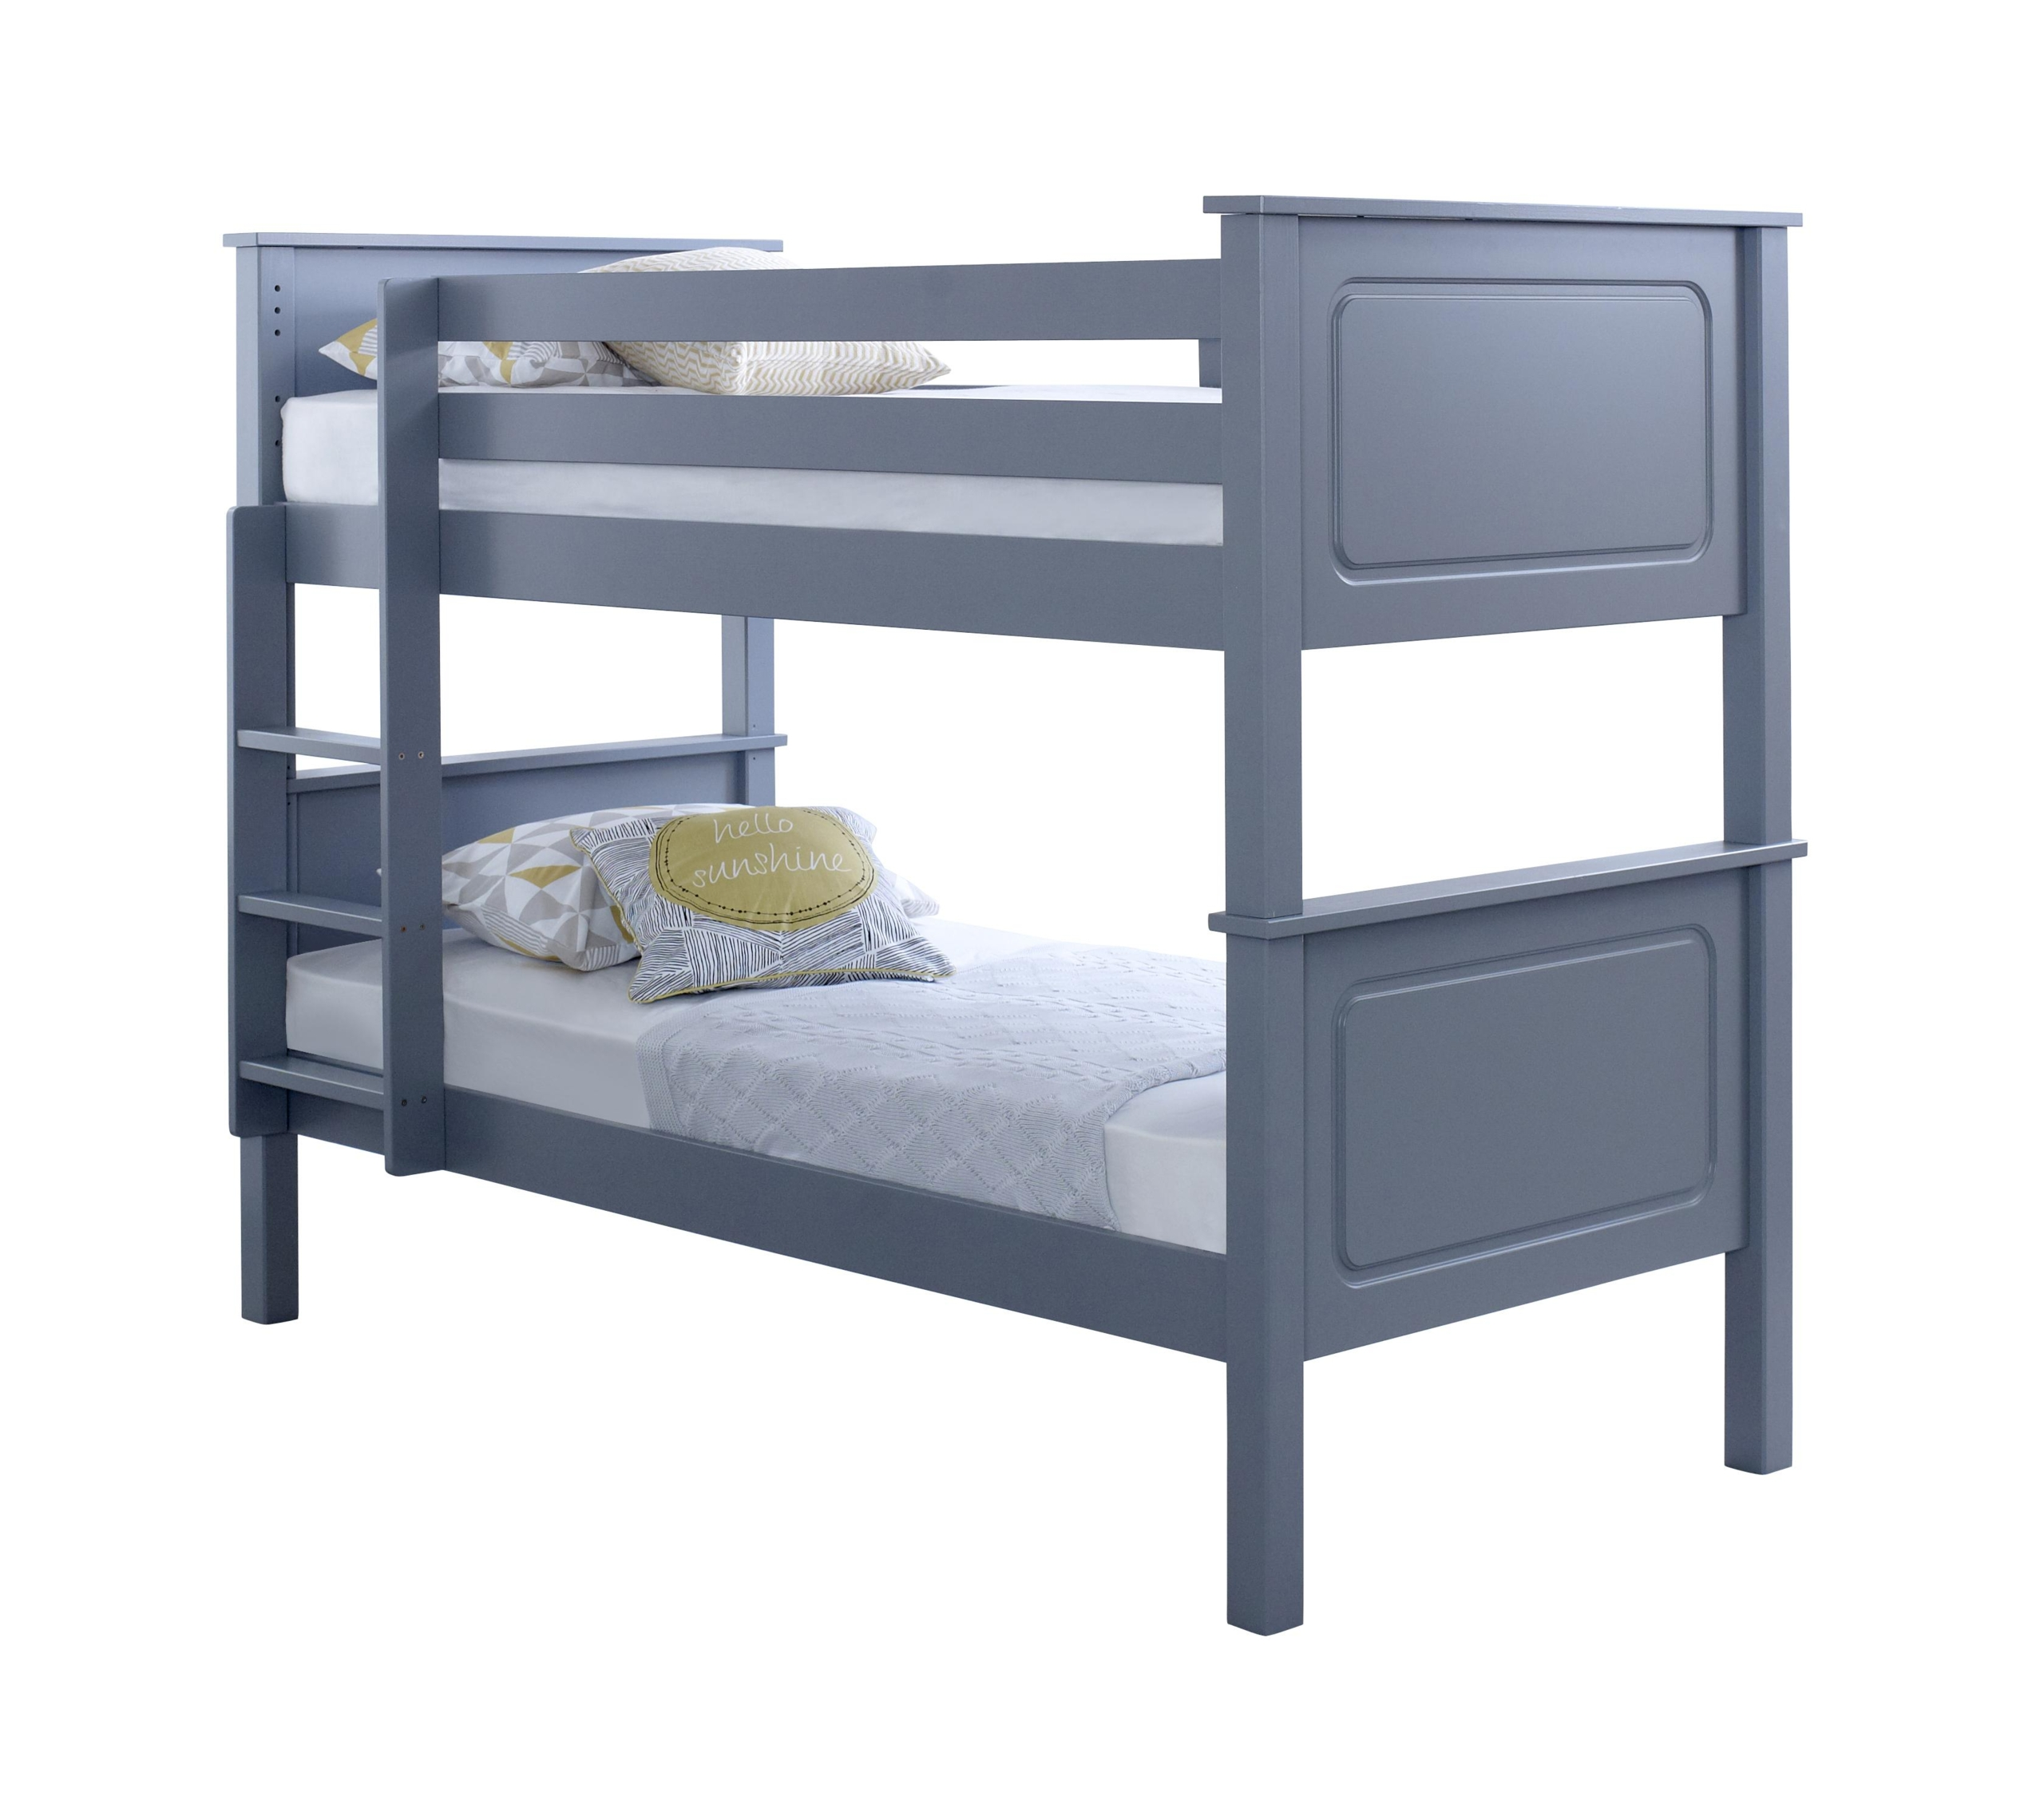 Picture of: Heavy Duty Bunk Beds You Ll Love In 2020 Visualhunt